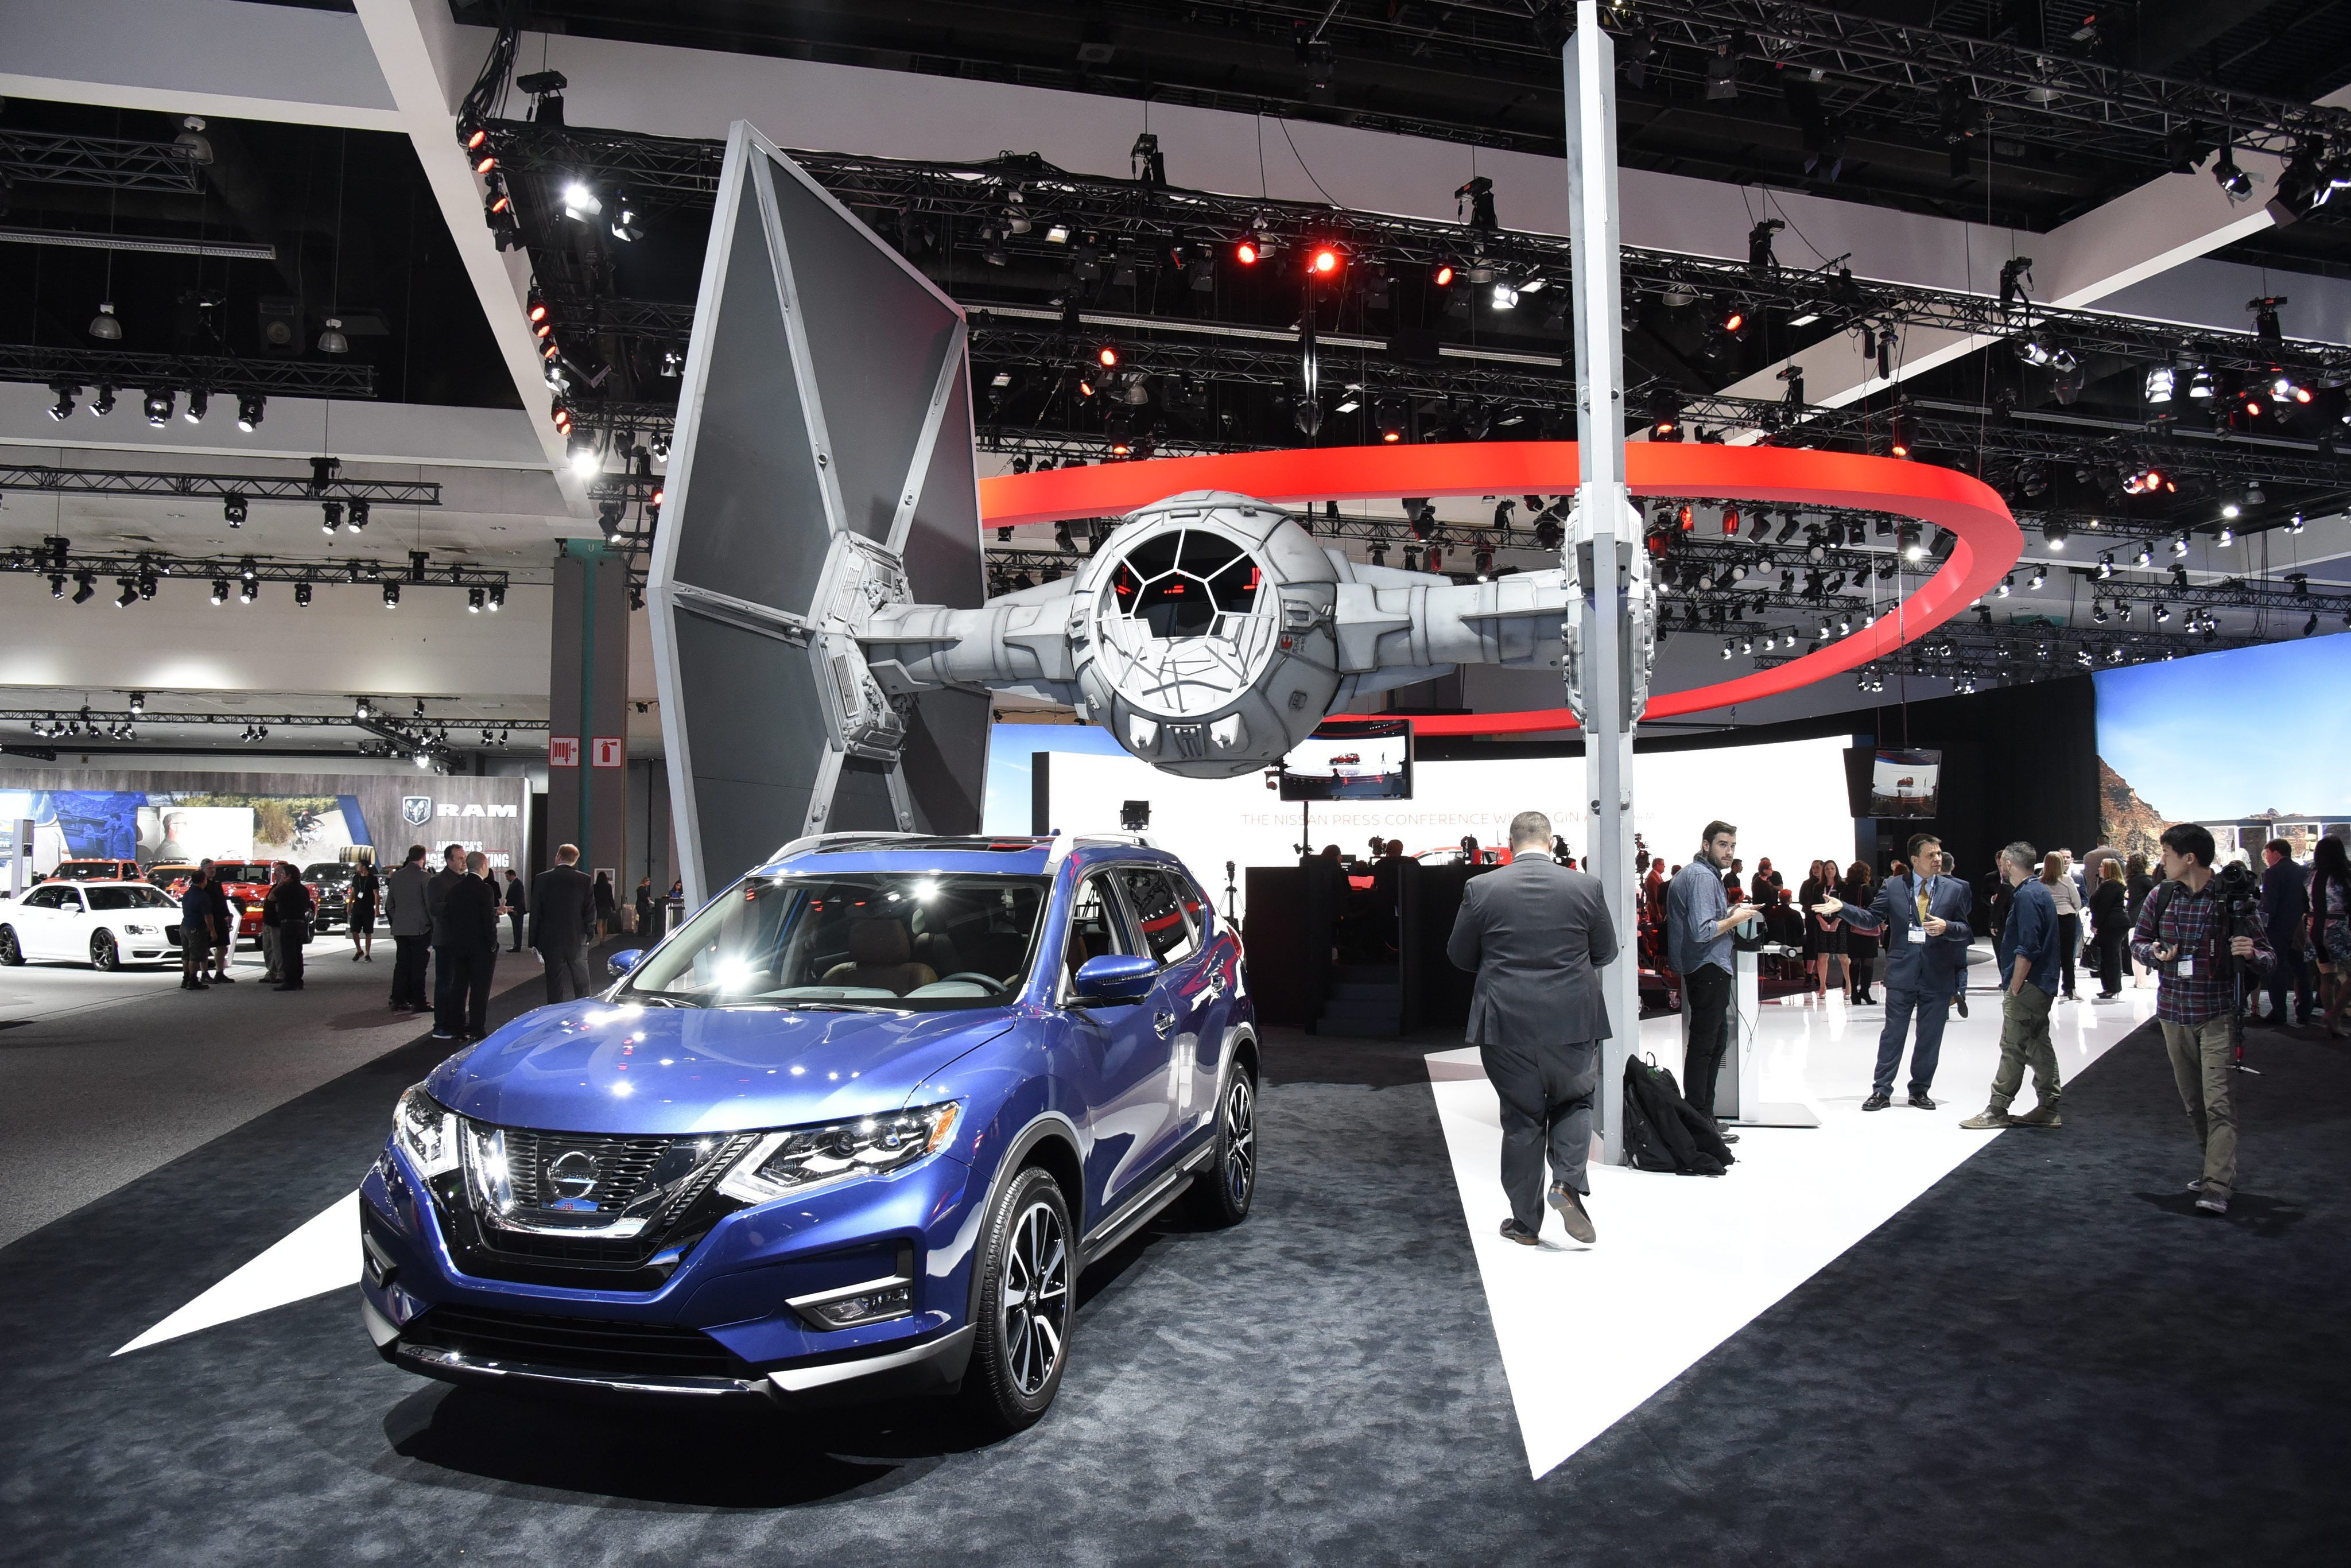 A Touch Of Star Wars Swarm Of SUVs At LA Auto Show Transport THE - Car show usa